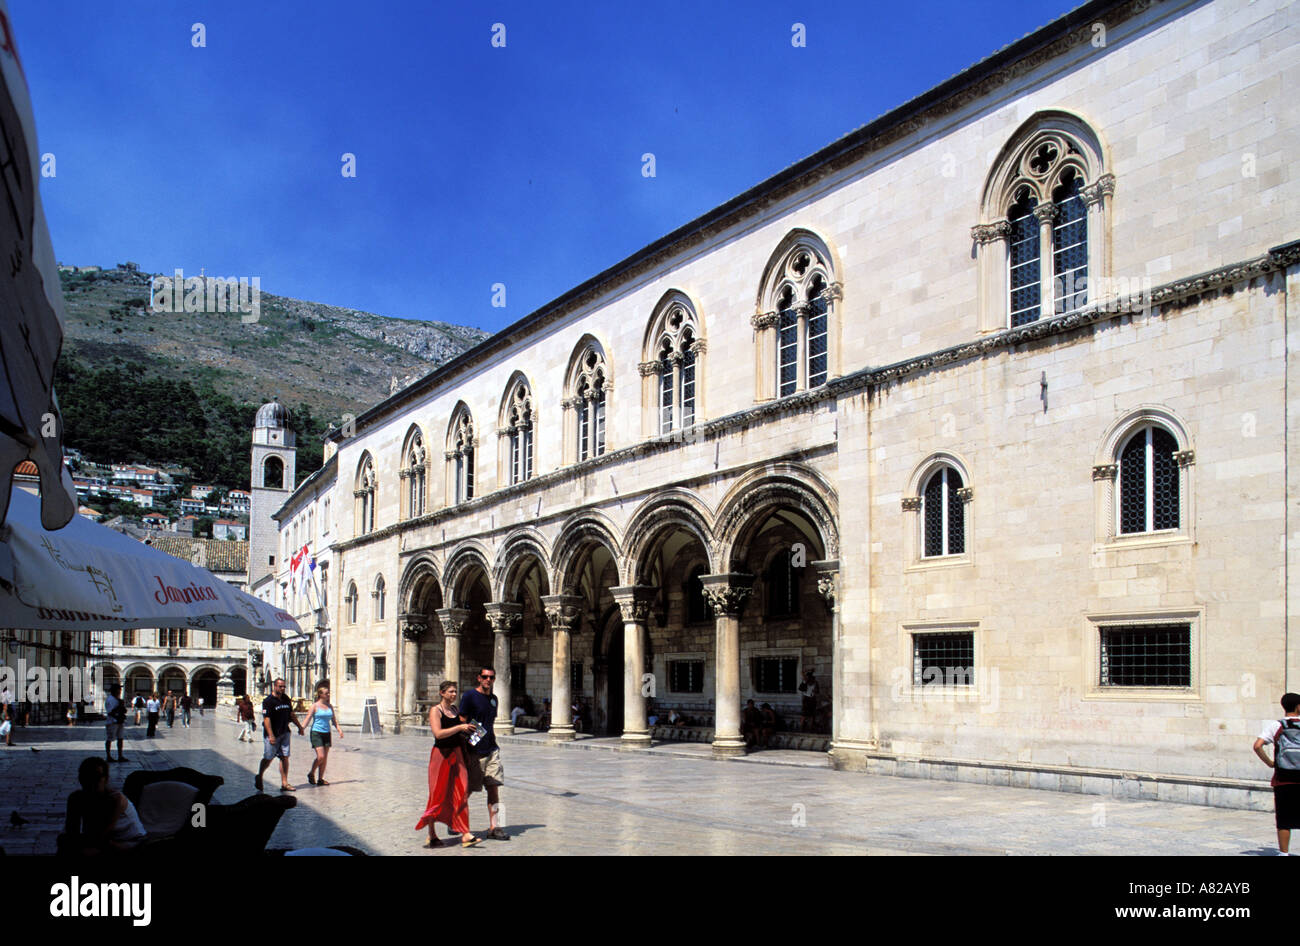 Croatia, Southern Dalmatia, Dubrovnic, the Palace of the Superintendent Stock Photo